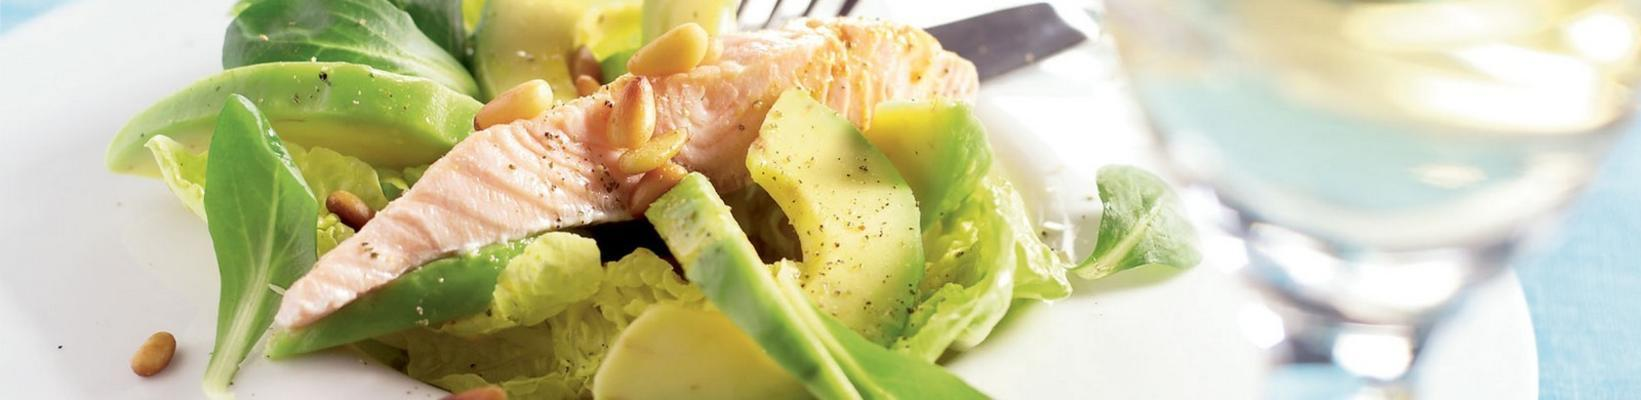 salad with poached salmon fillet and orange dressing